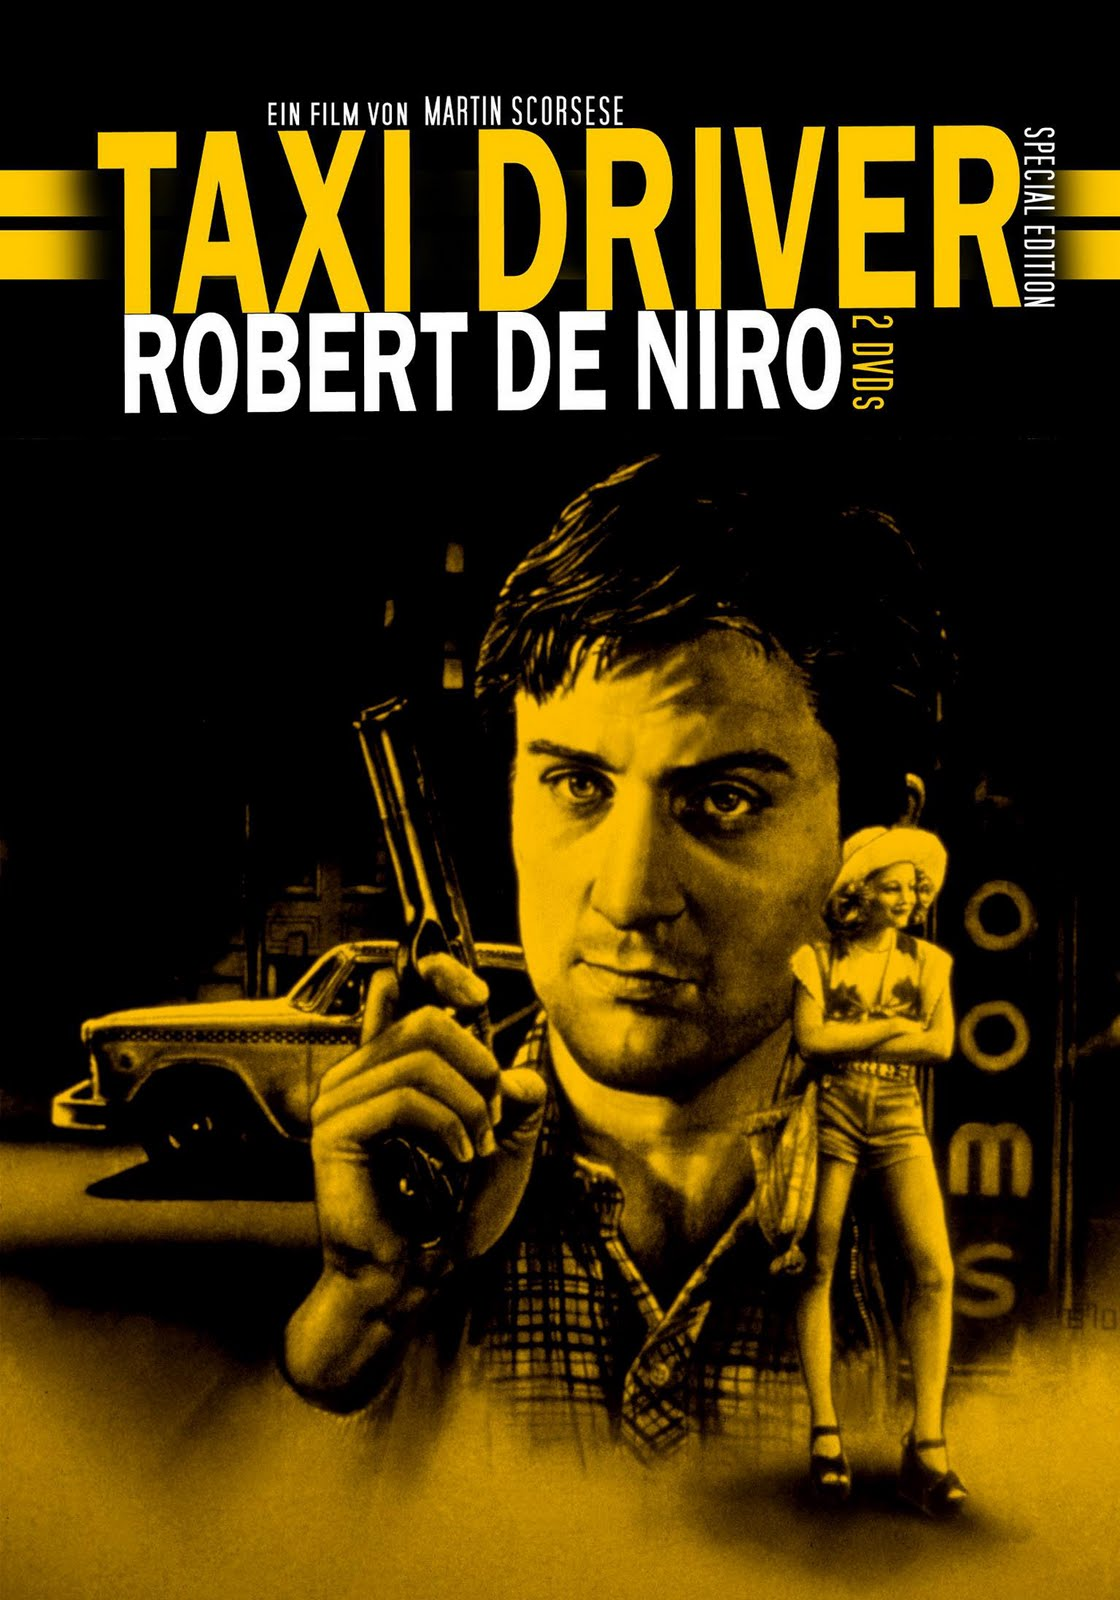 MOVIE POSTERS: TAXI DRIVER (1976)